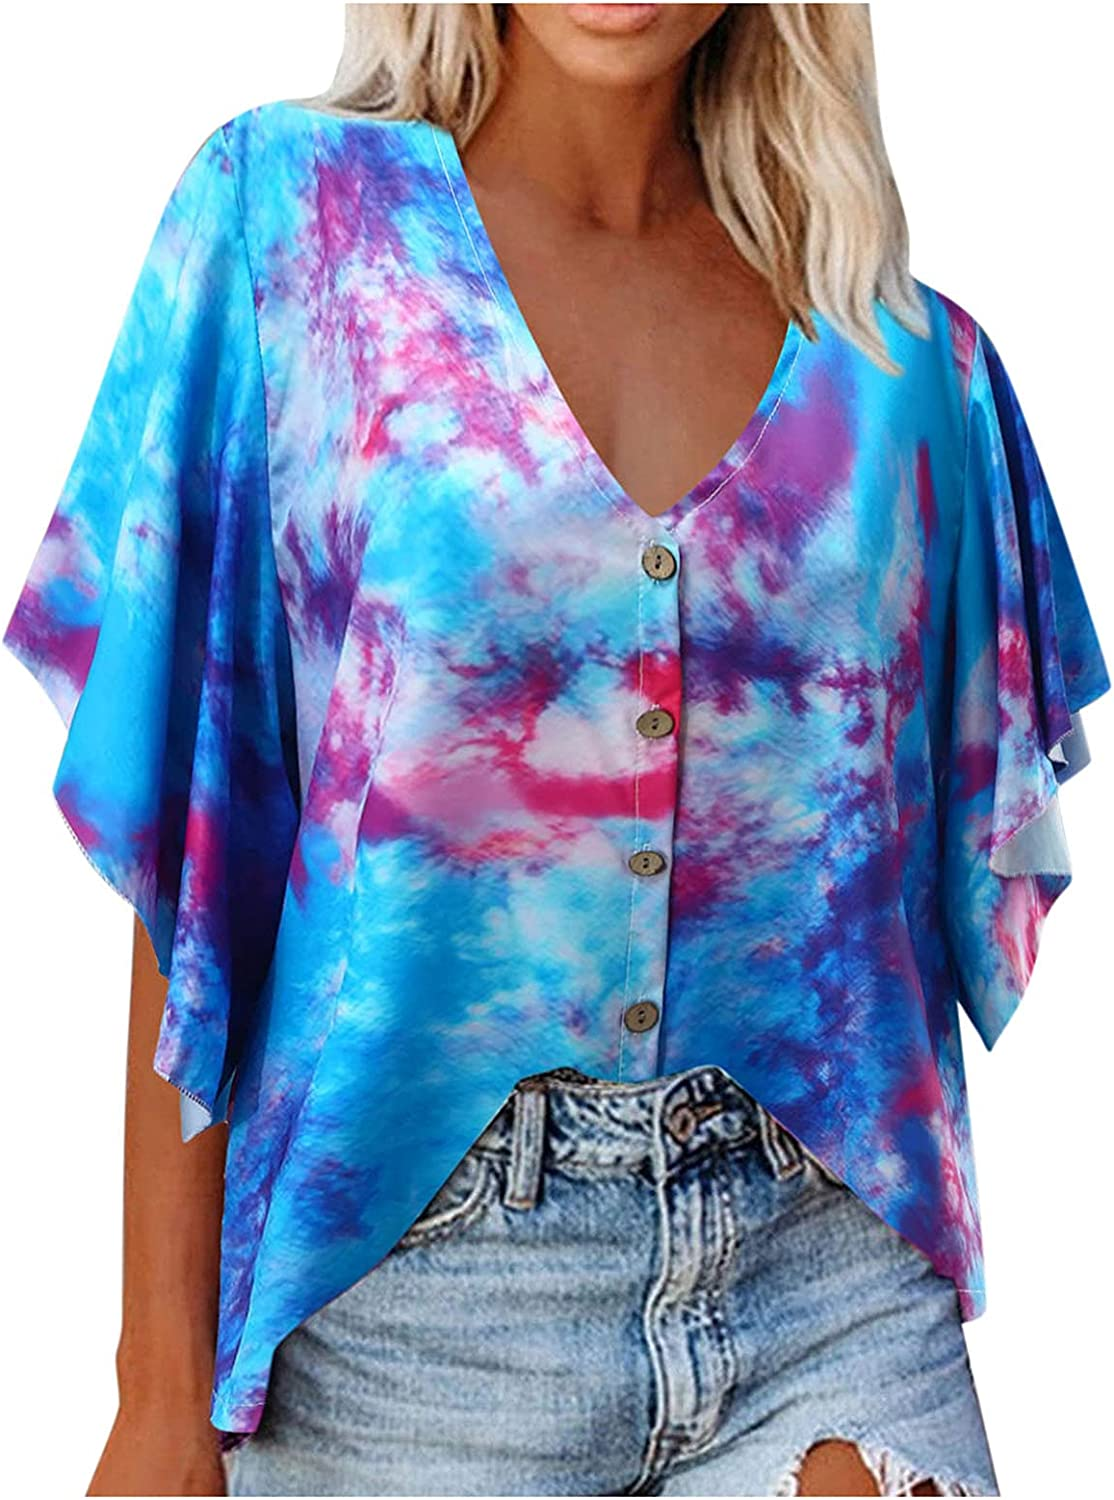 ManxiVoo Women's Tie-Dye Floral Printed V Neck Short Bell Sleeve Button Down Loose Top Shirt Blouse